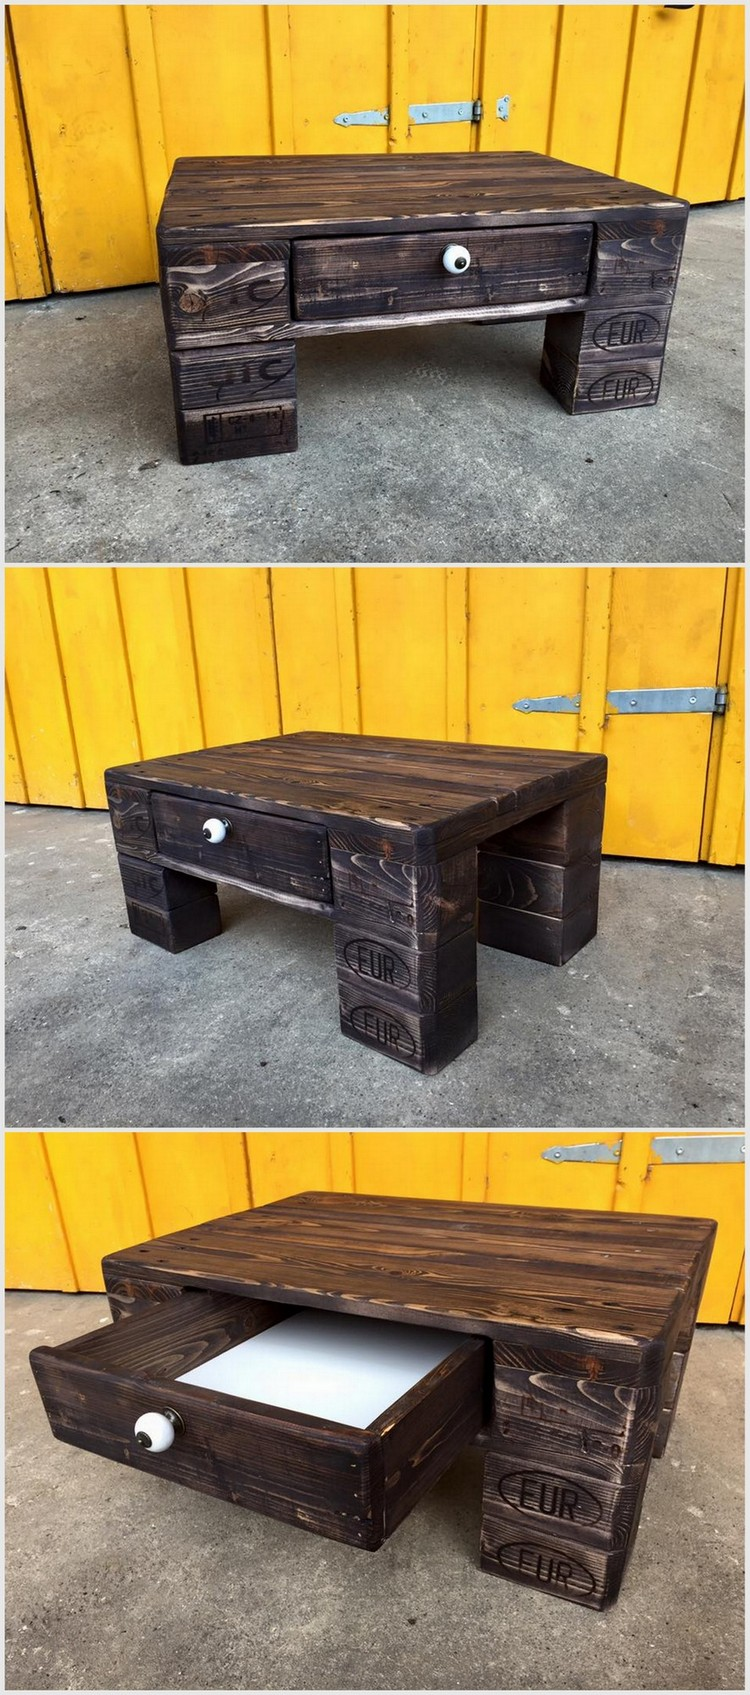 Wooden Pallet Table with Drawre